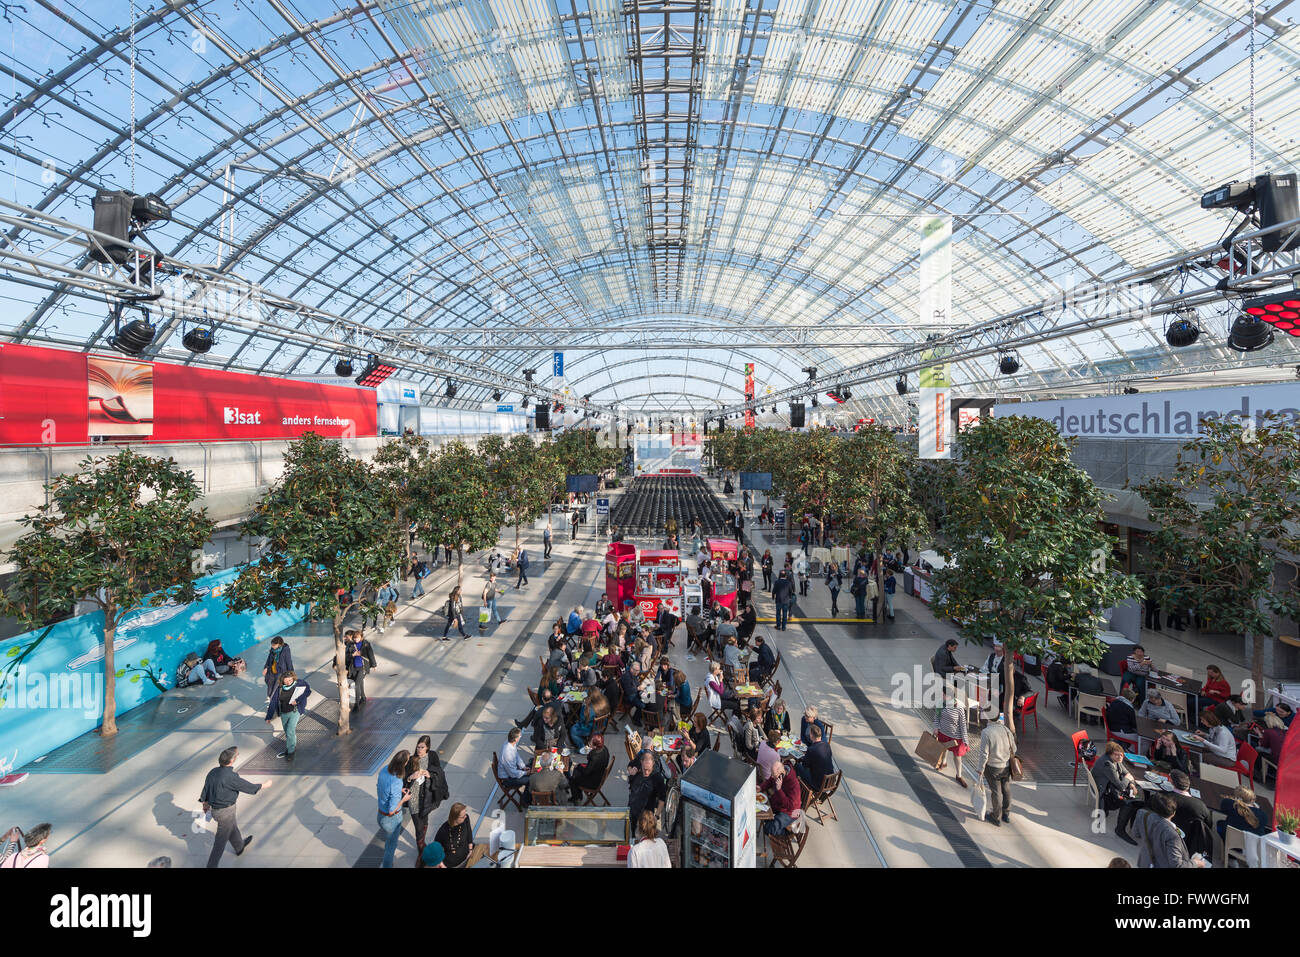 Neue Messe glass hall, book fair, Leipzig, Saxony, Germany - Stock Image